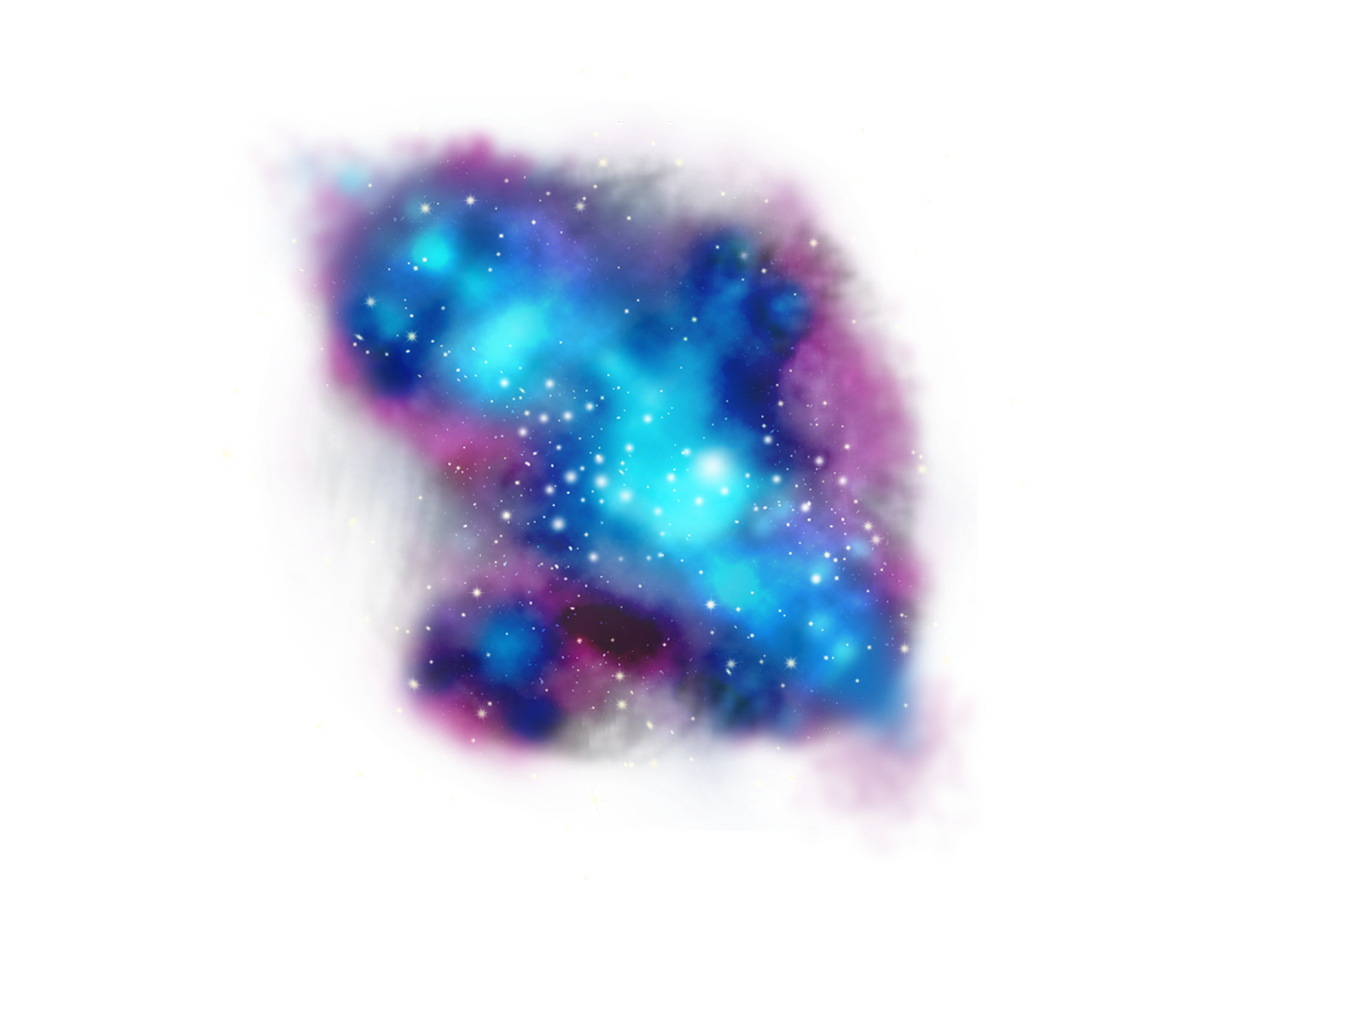 Galaxy star clipart image royalty free download FreeToEdit clipart png stars galaxy with a transparent... image royalty free download